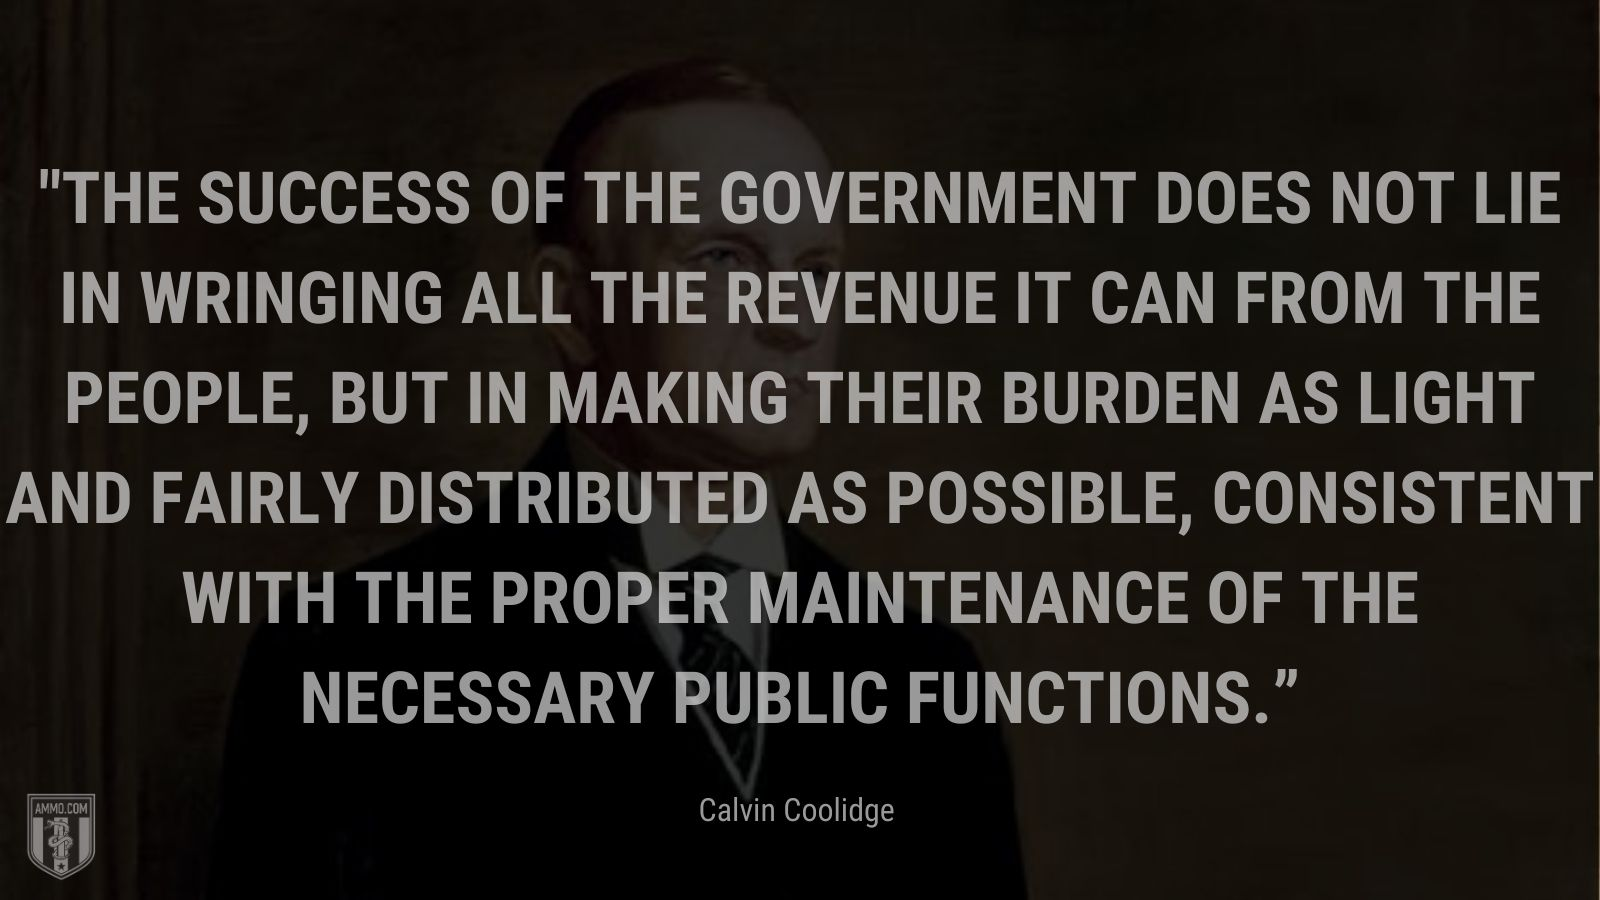 """""""The success of the Government does not lie in wringing all the revenue it can from the people, but in making their burden as light and fairly distributed as possible, consistent with the proper maintenance of the necessary public functions."""" - Calvin Coolidge"""